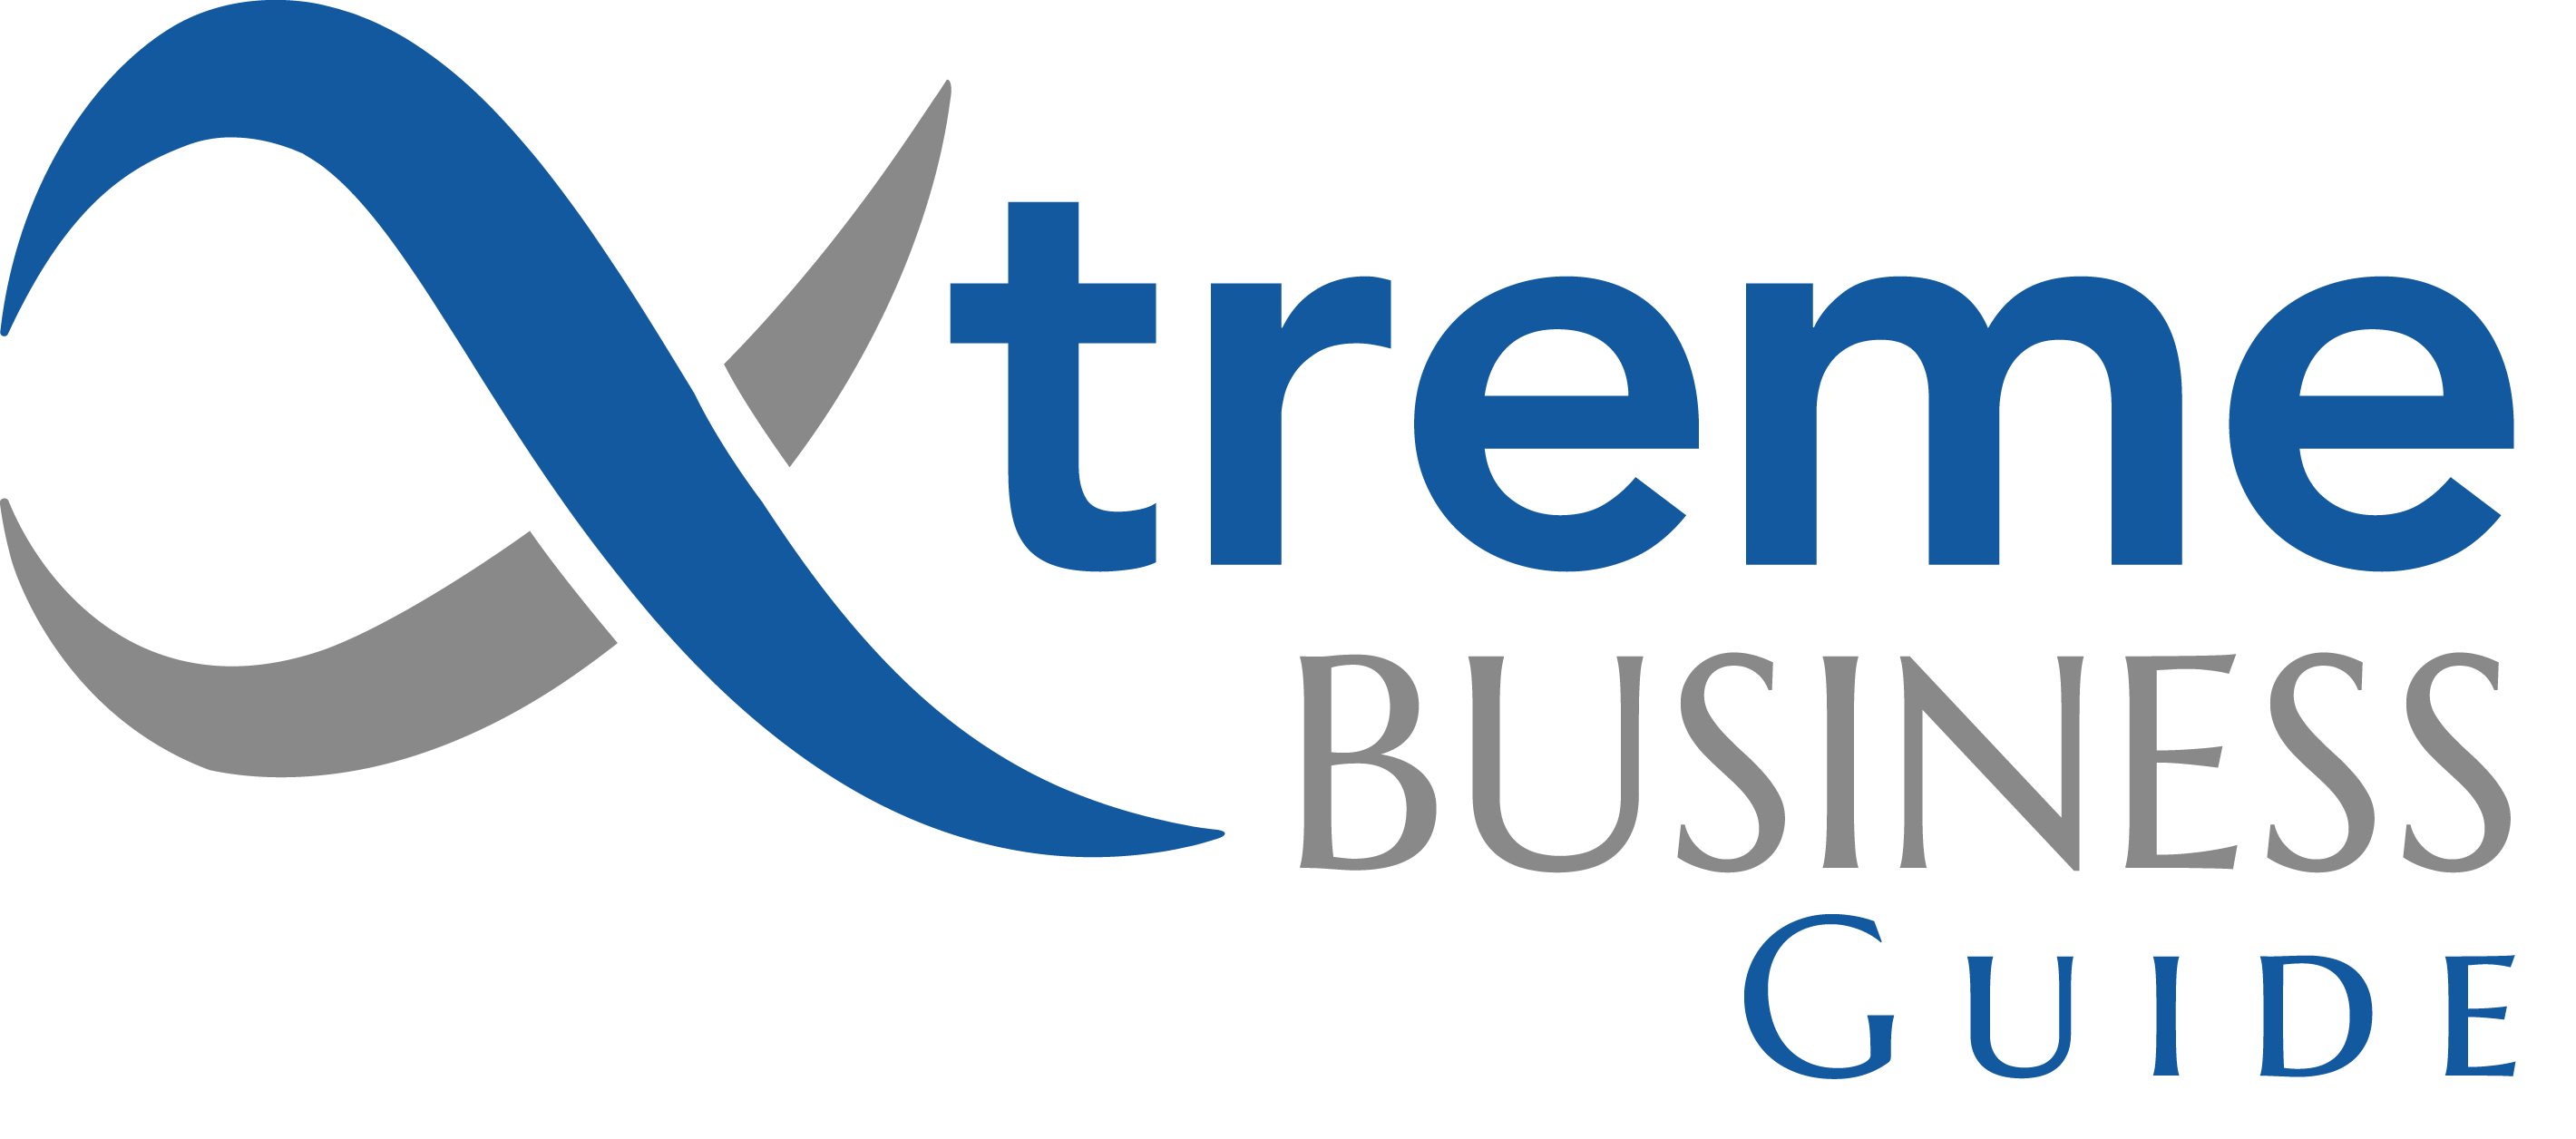 Xtreme Business Guide